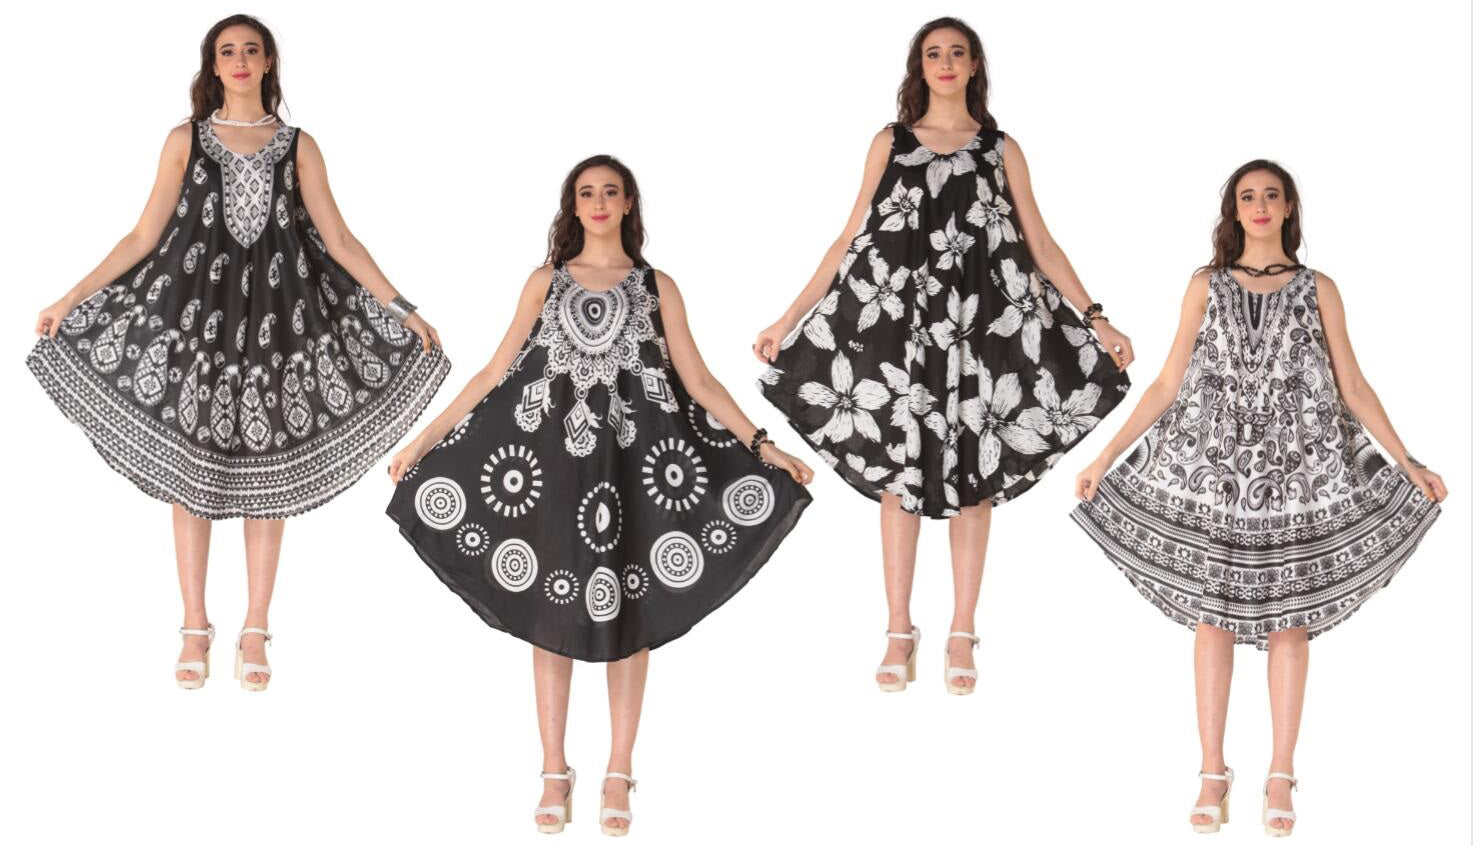 Wholesale Clothing Dresses Plus Printed Rayon Dress-Round Neck BK/WT Group 48/Case (1X-3X) NWP9p